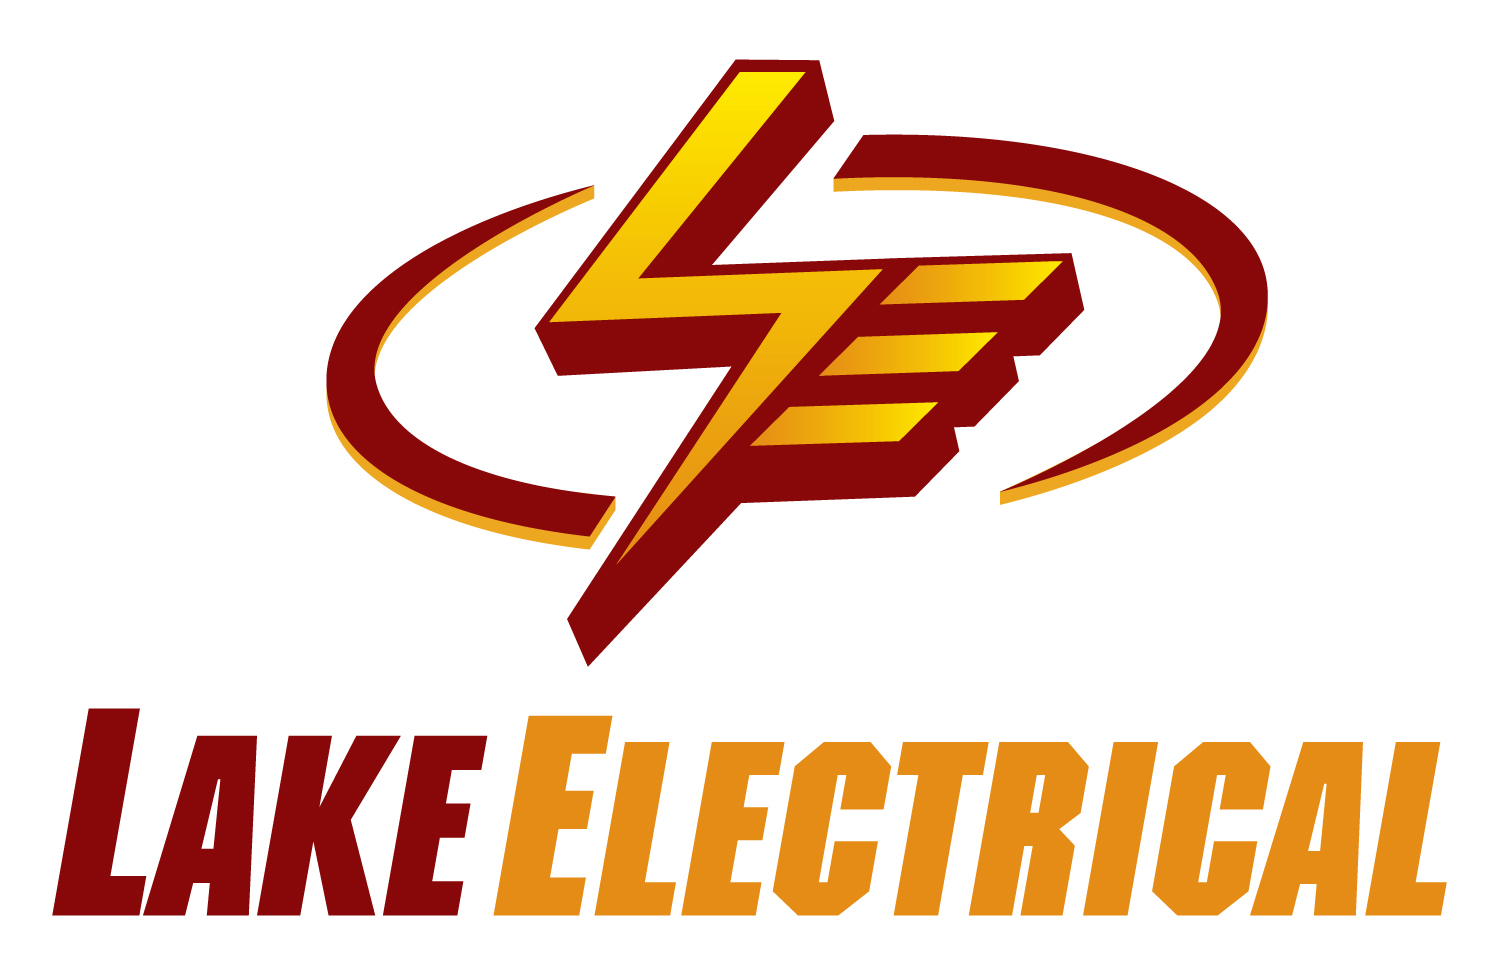 Lake Electrical - About Us